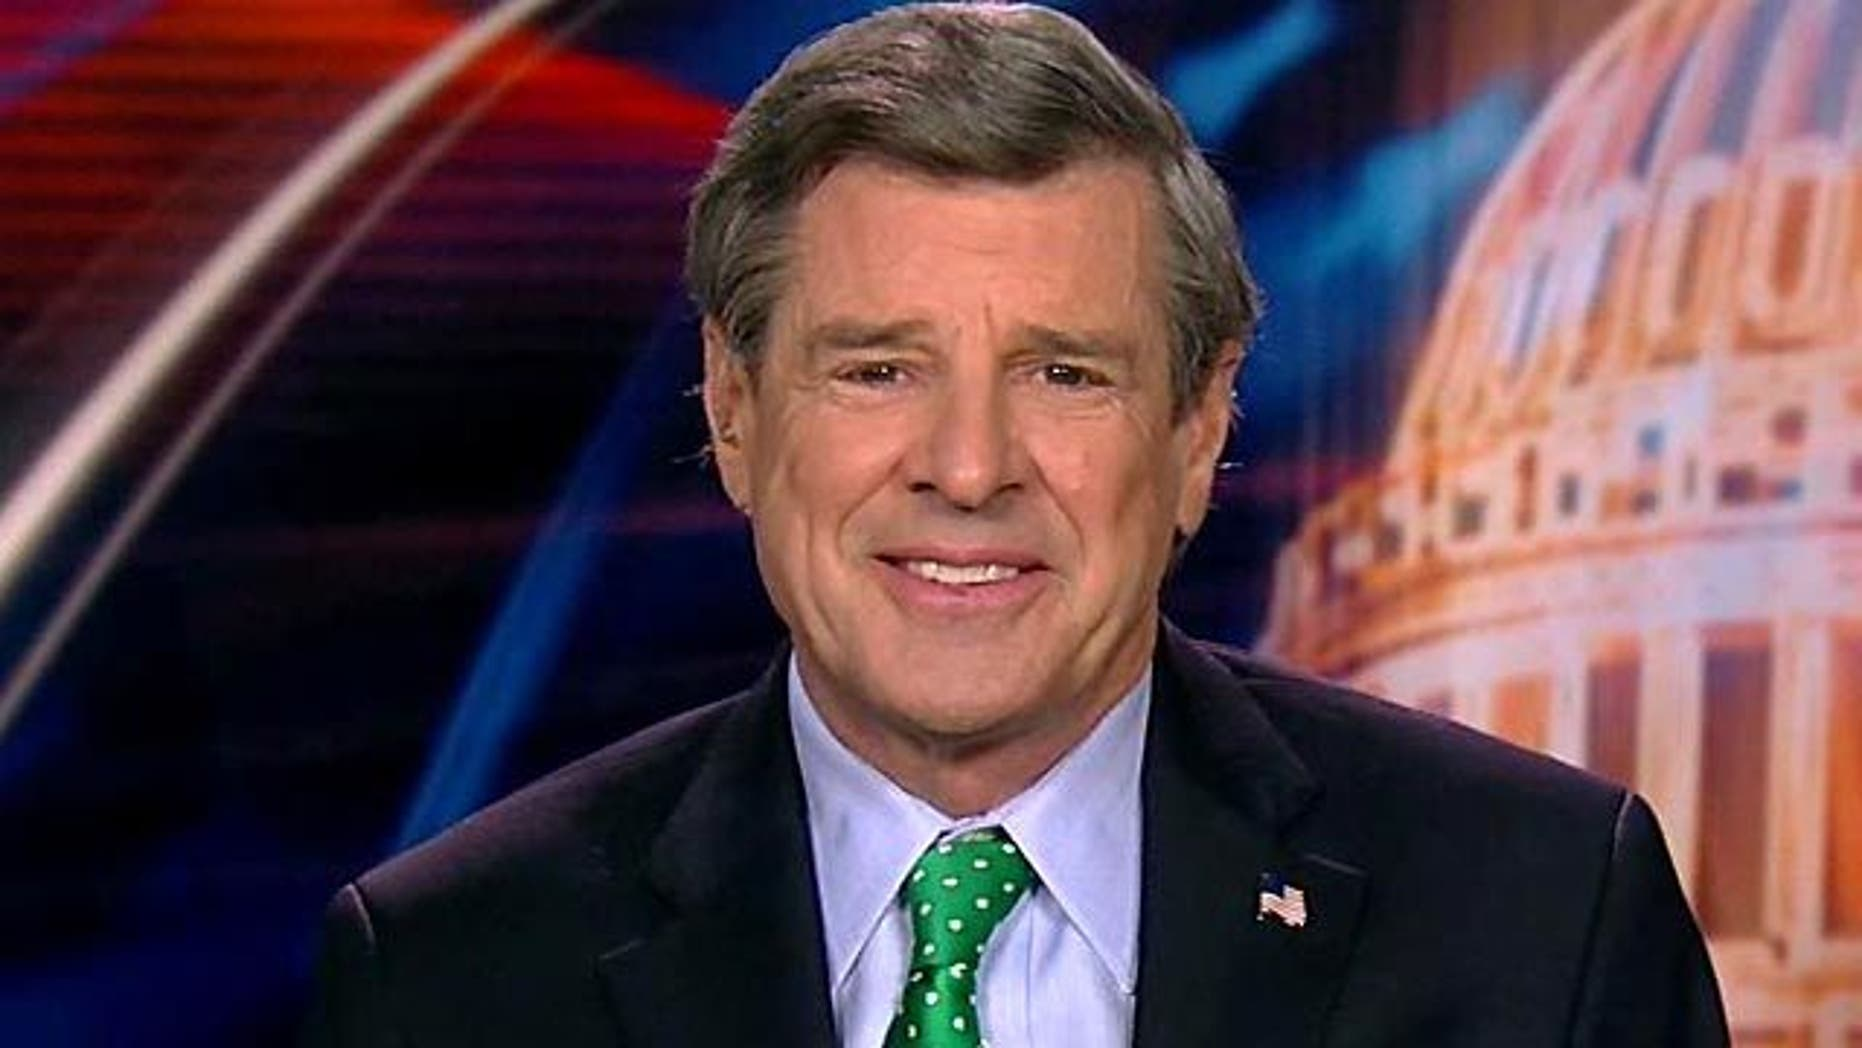 Paul Bremer reflects on what worked and what did not, almost 15 years since the U.S invasion of Iraq